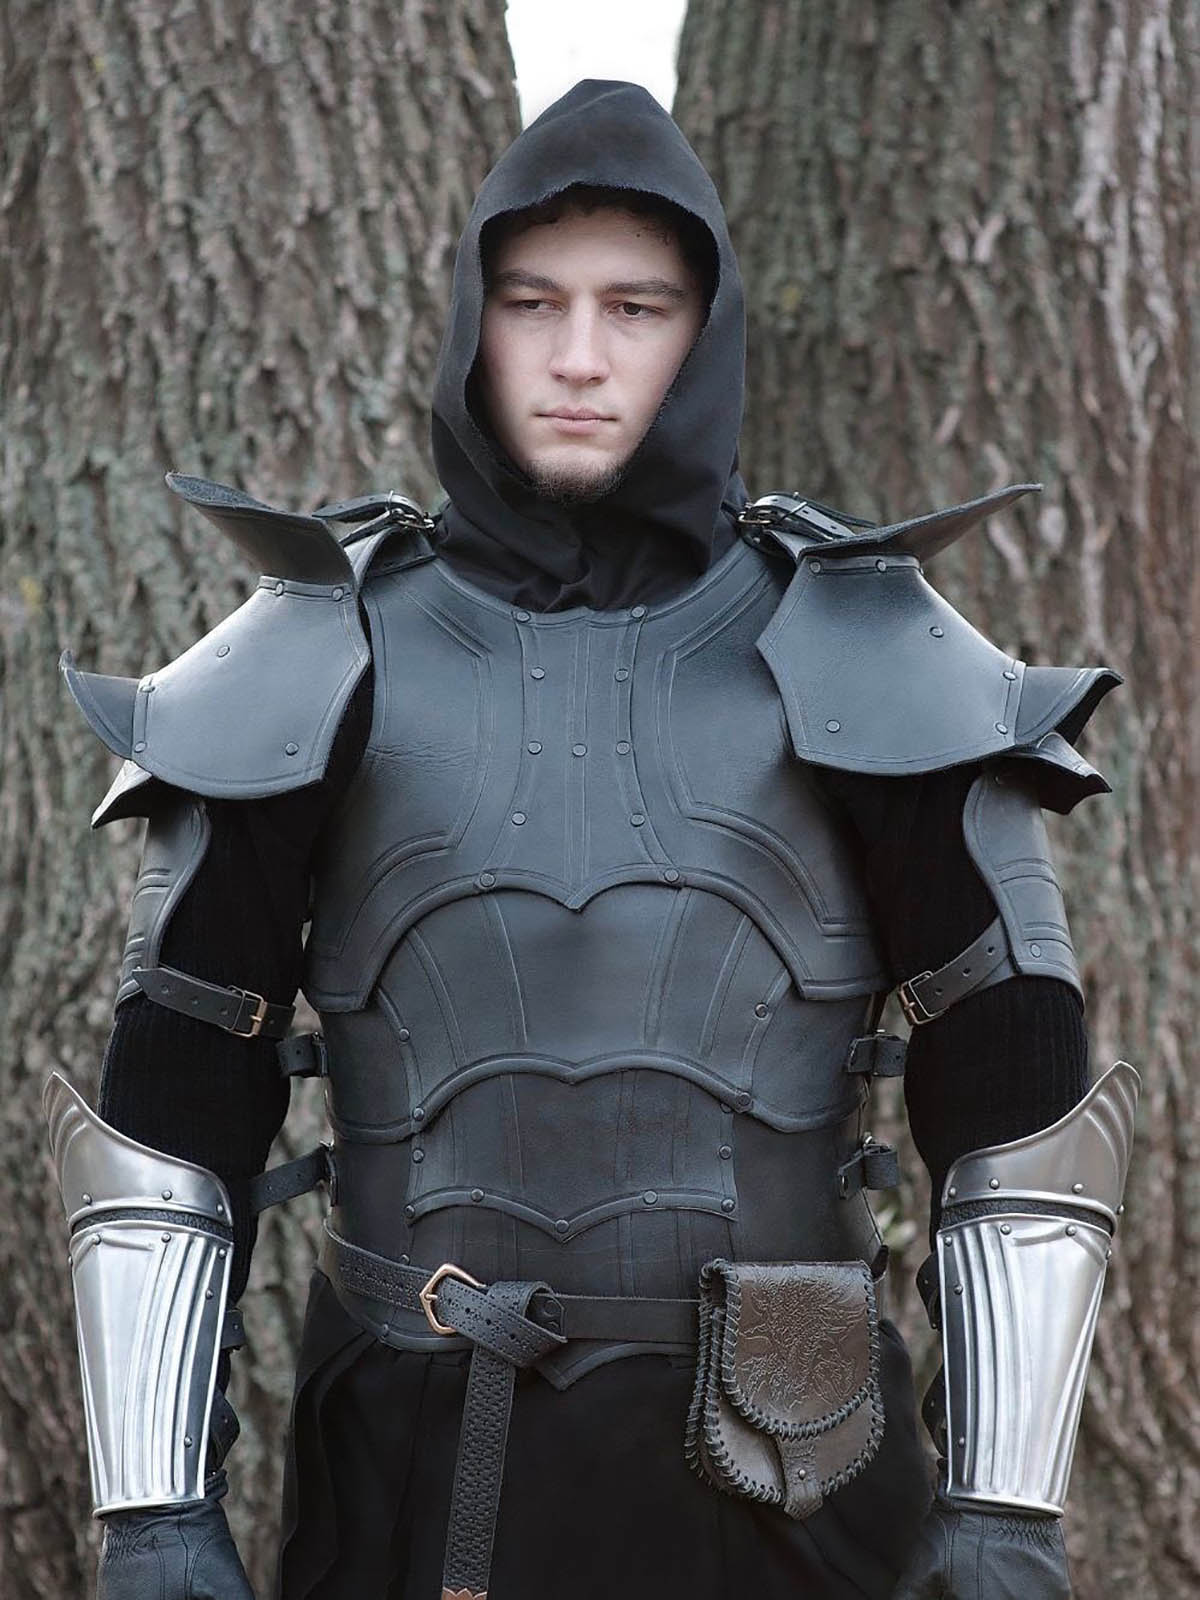 larp armor armor fantasy Larp medieval costume steel armour: breastplate